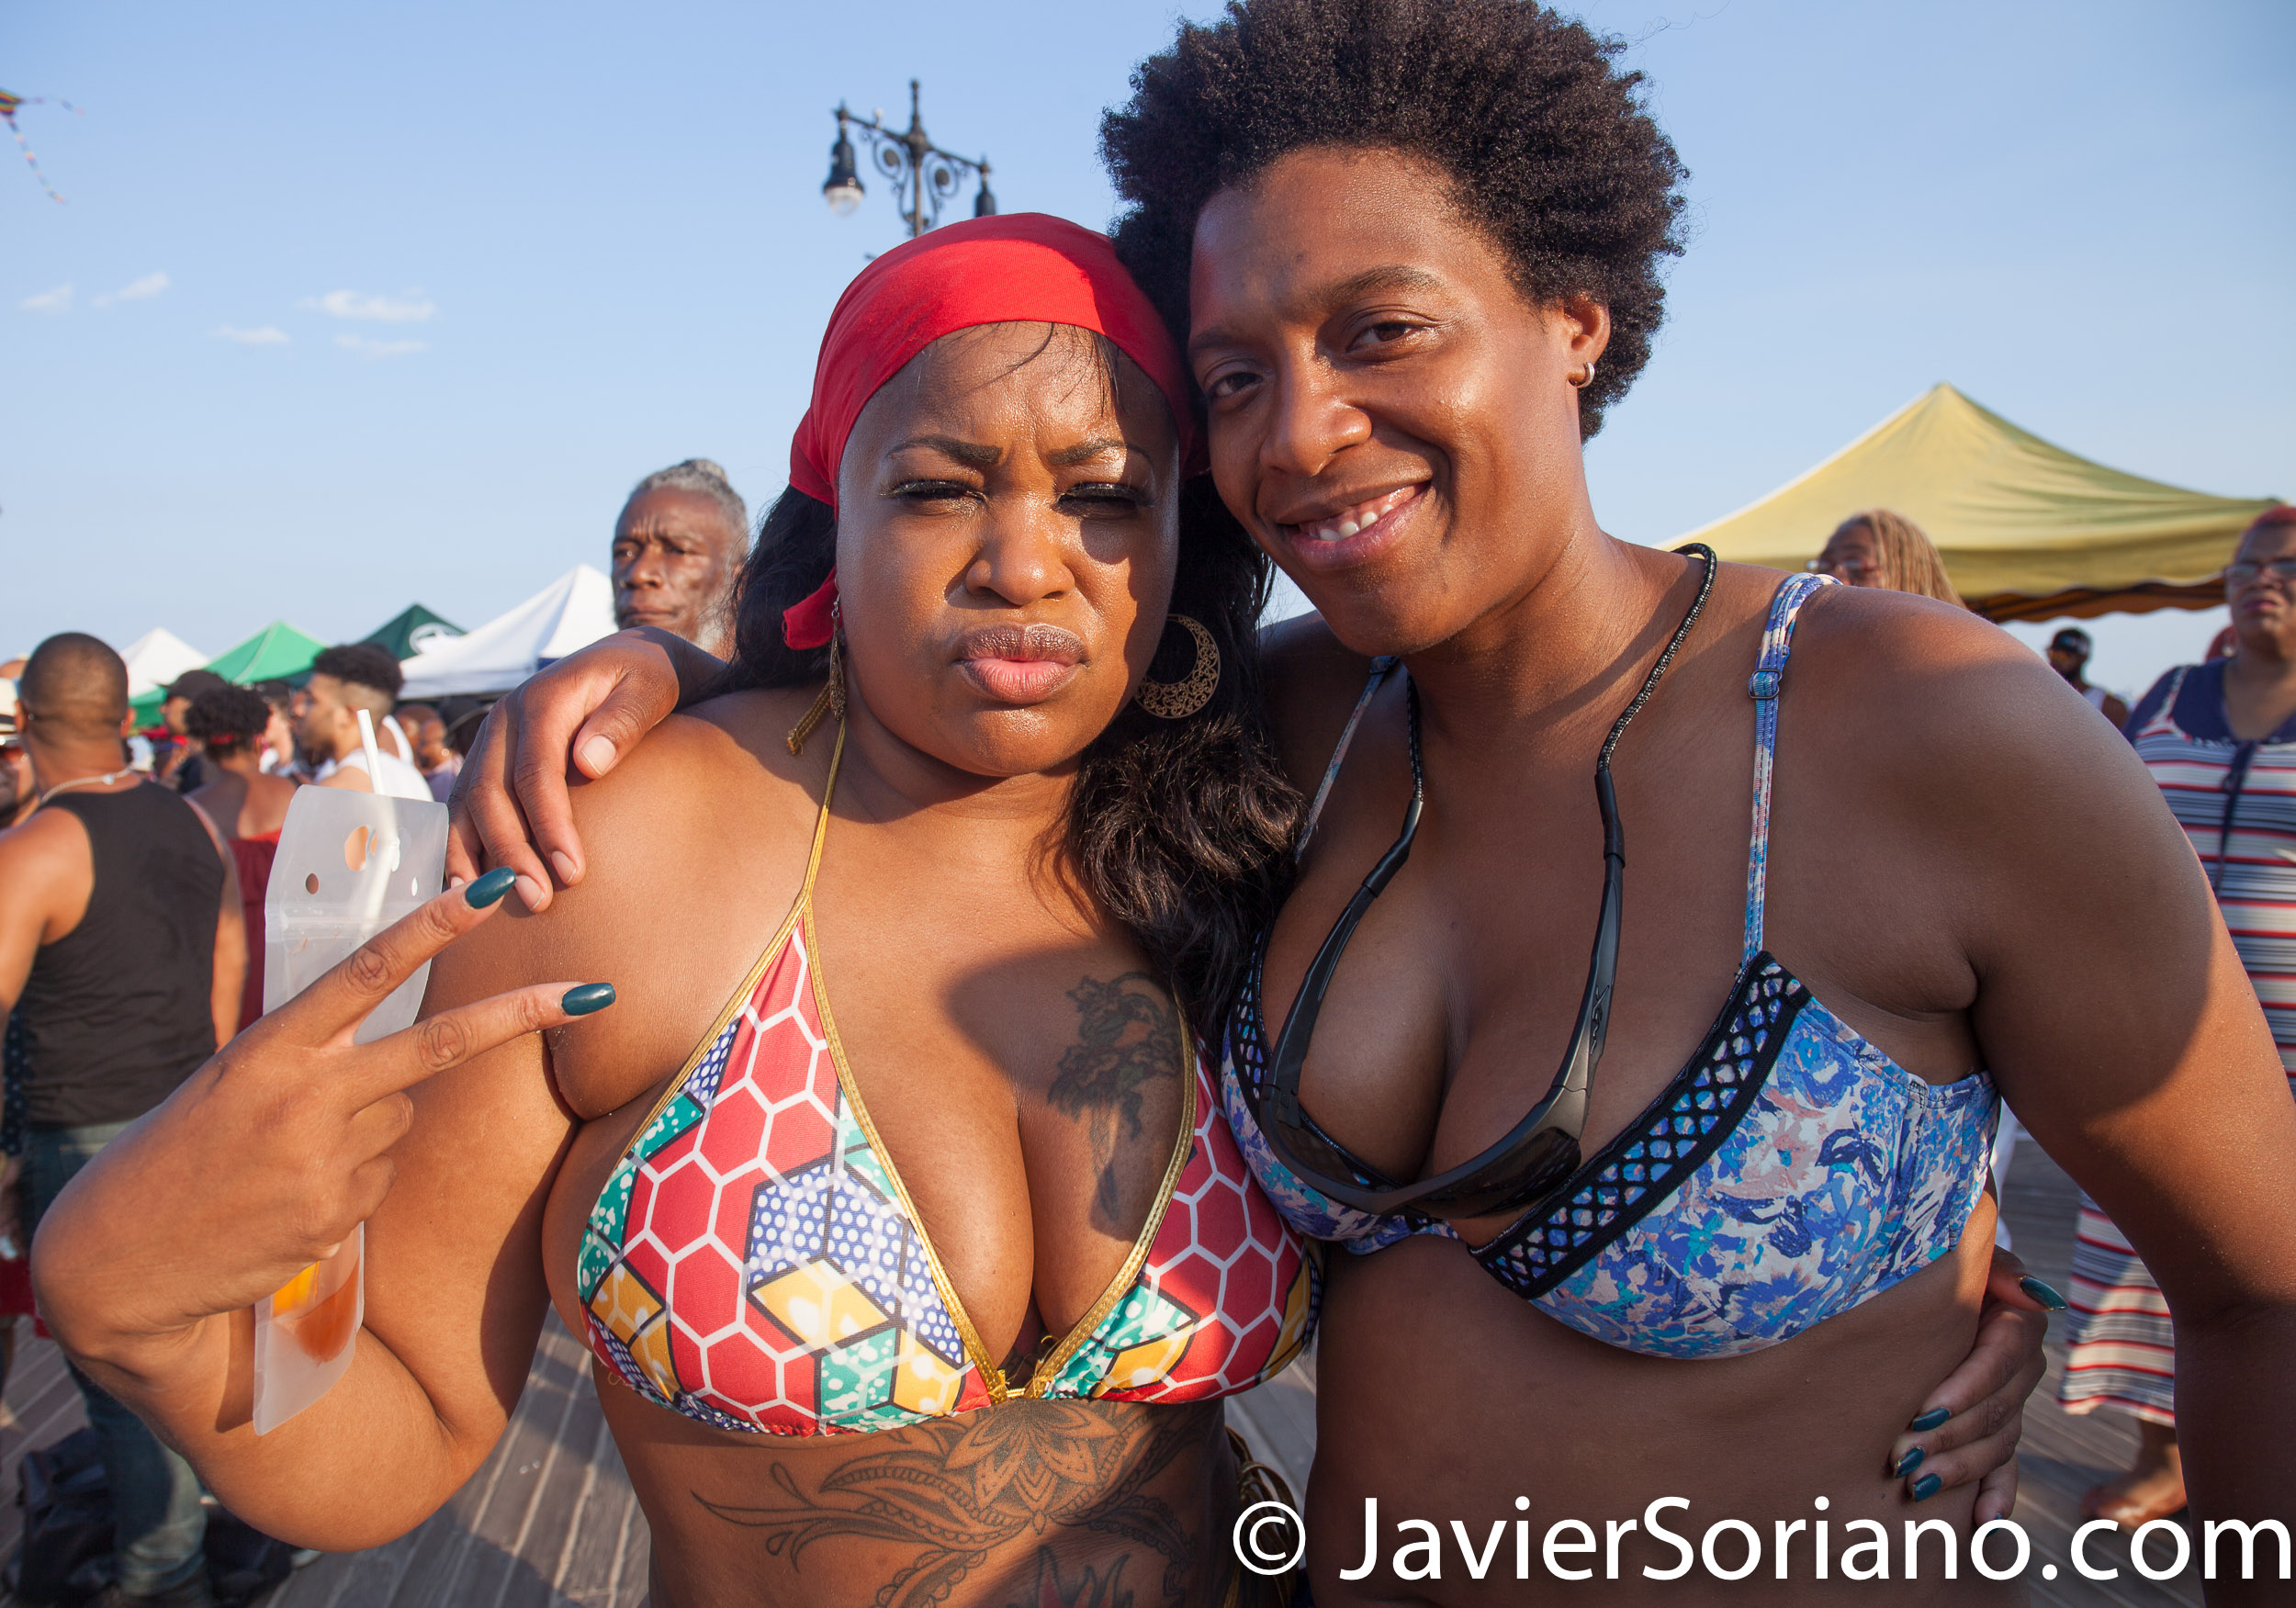 8/20/2017. Coney Island. Brooklyn, NYC - Pride at the Beach. NYC Black Pride 2017. Photo by Javier Soriano/www.JavierSoriano.com